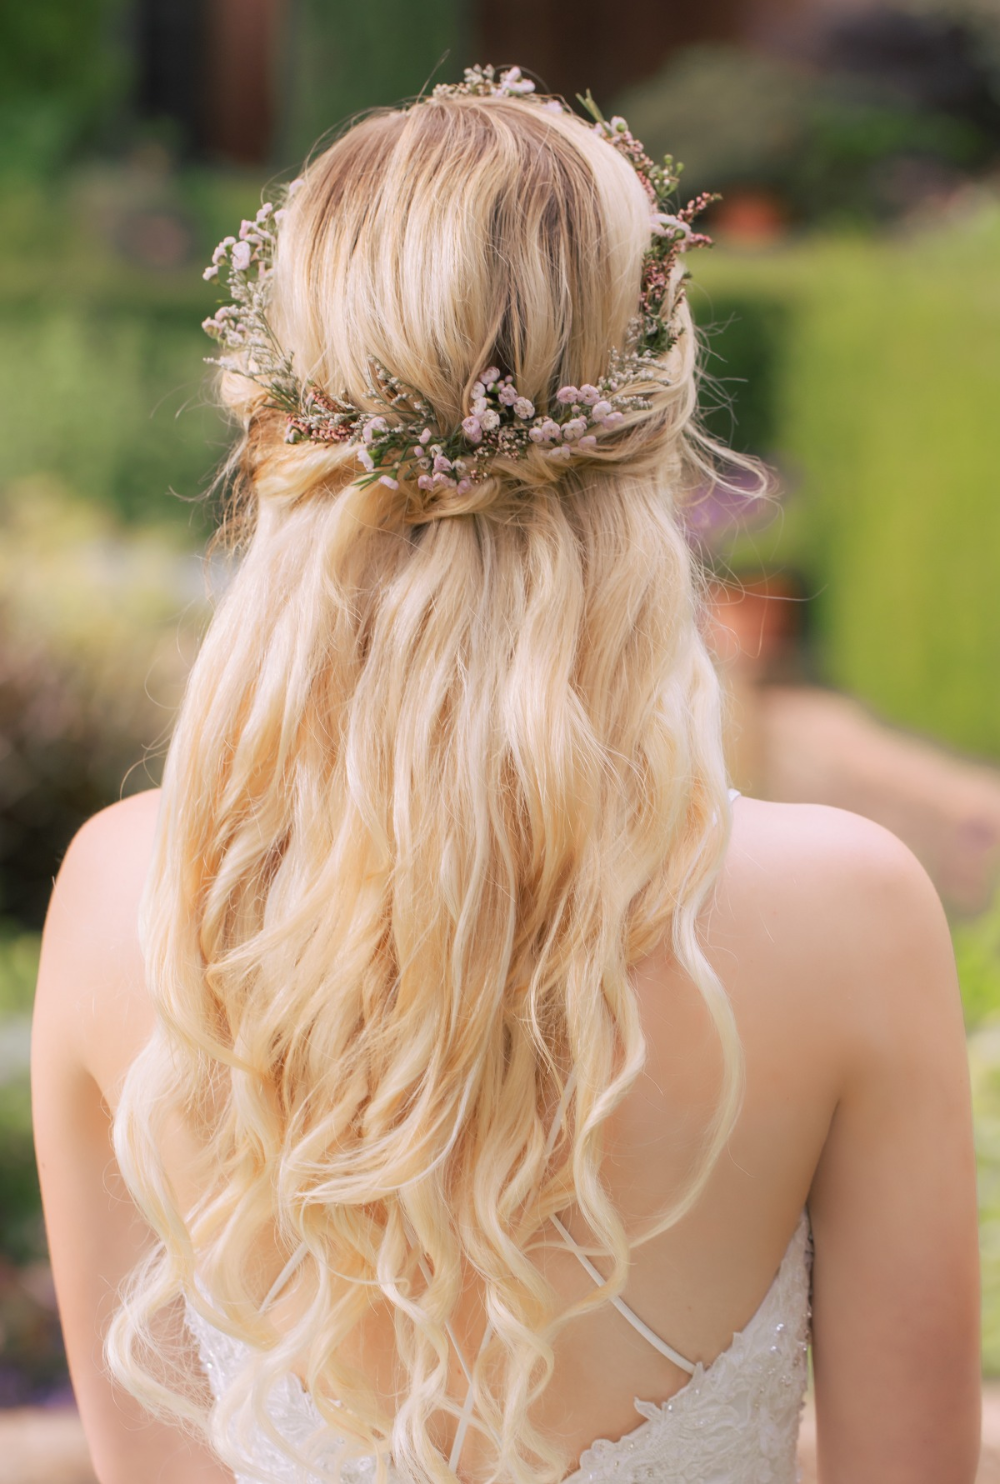 You Will Love These Soft Pink Garden Wedding Ideas Cute Hairstyles For Short Hair Thick Hair Styles Wedding Hairstyles